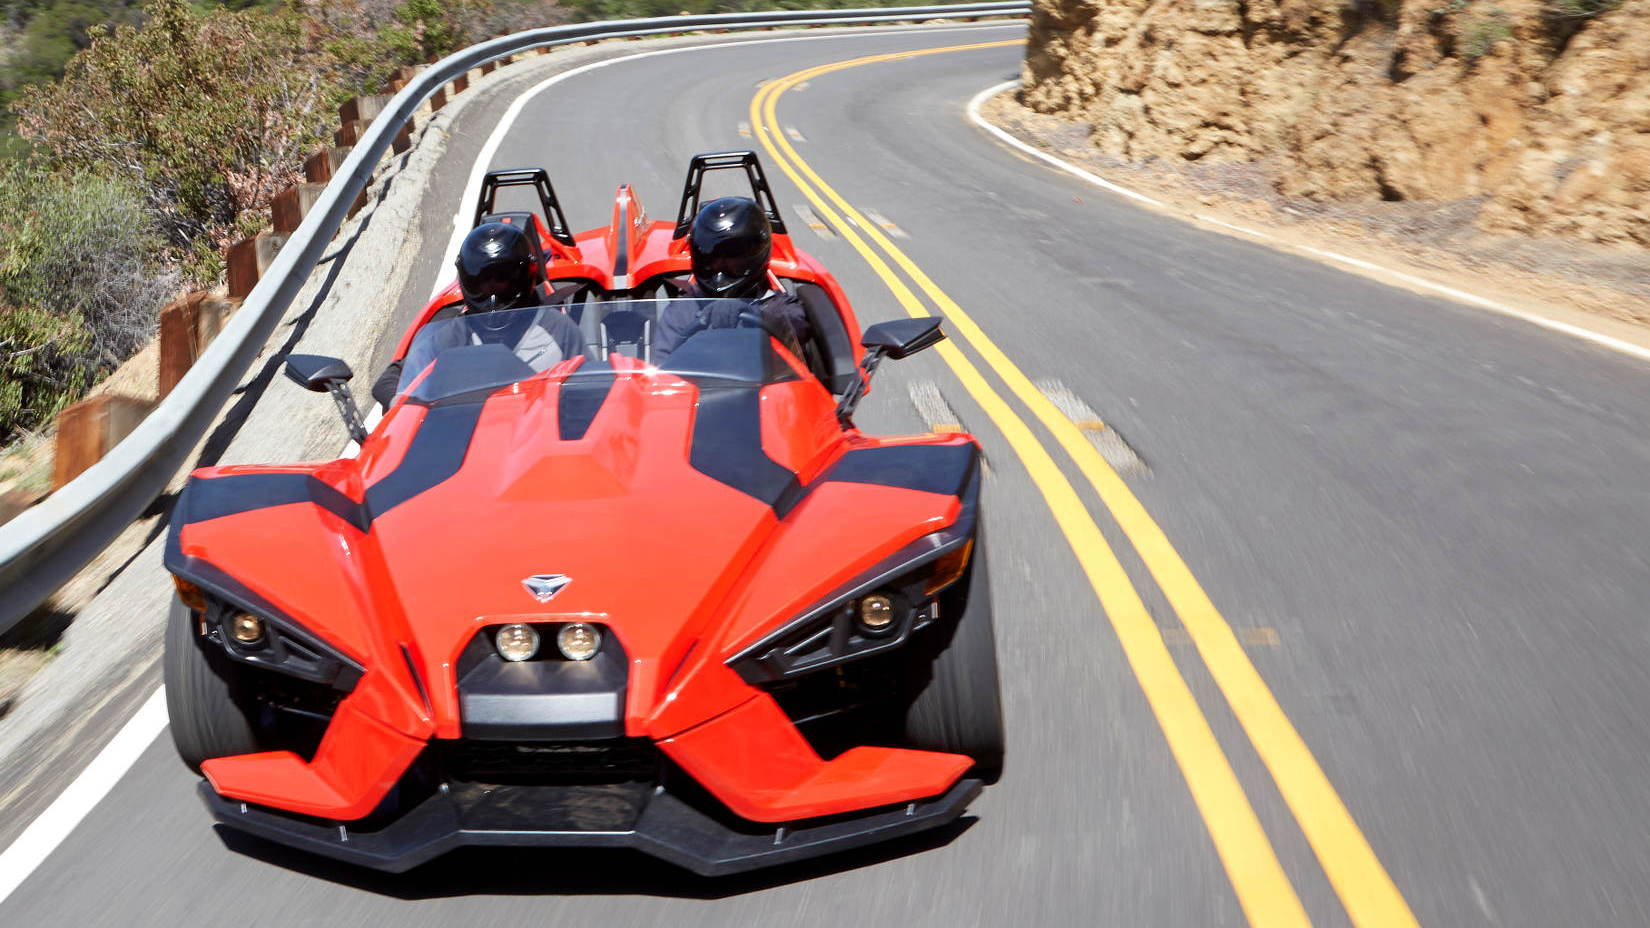 3 Wheel Car >> Polaris Slingshot Is A 173 Hp 20k 3 Wheeled Motorcycle